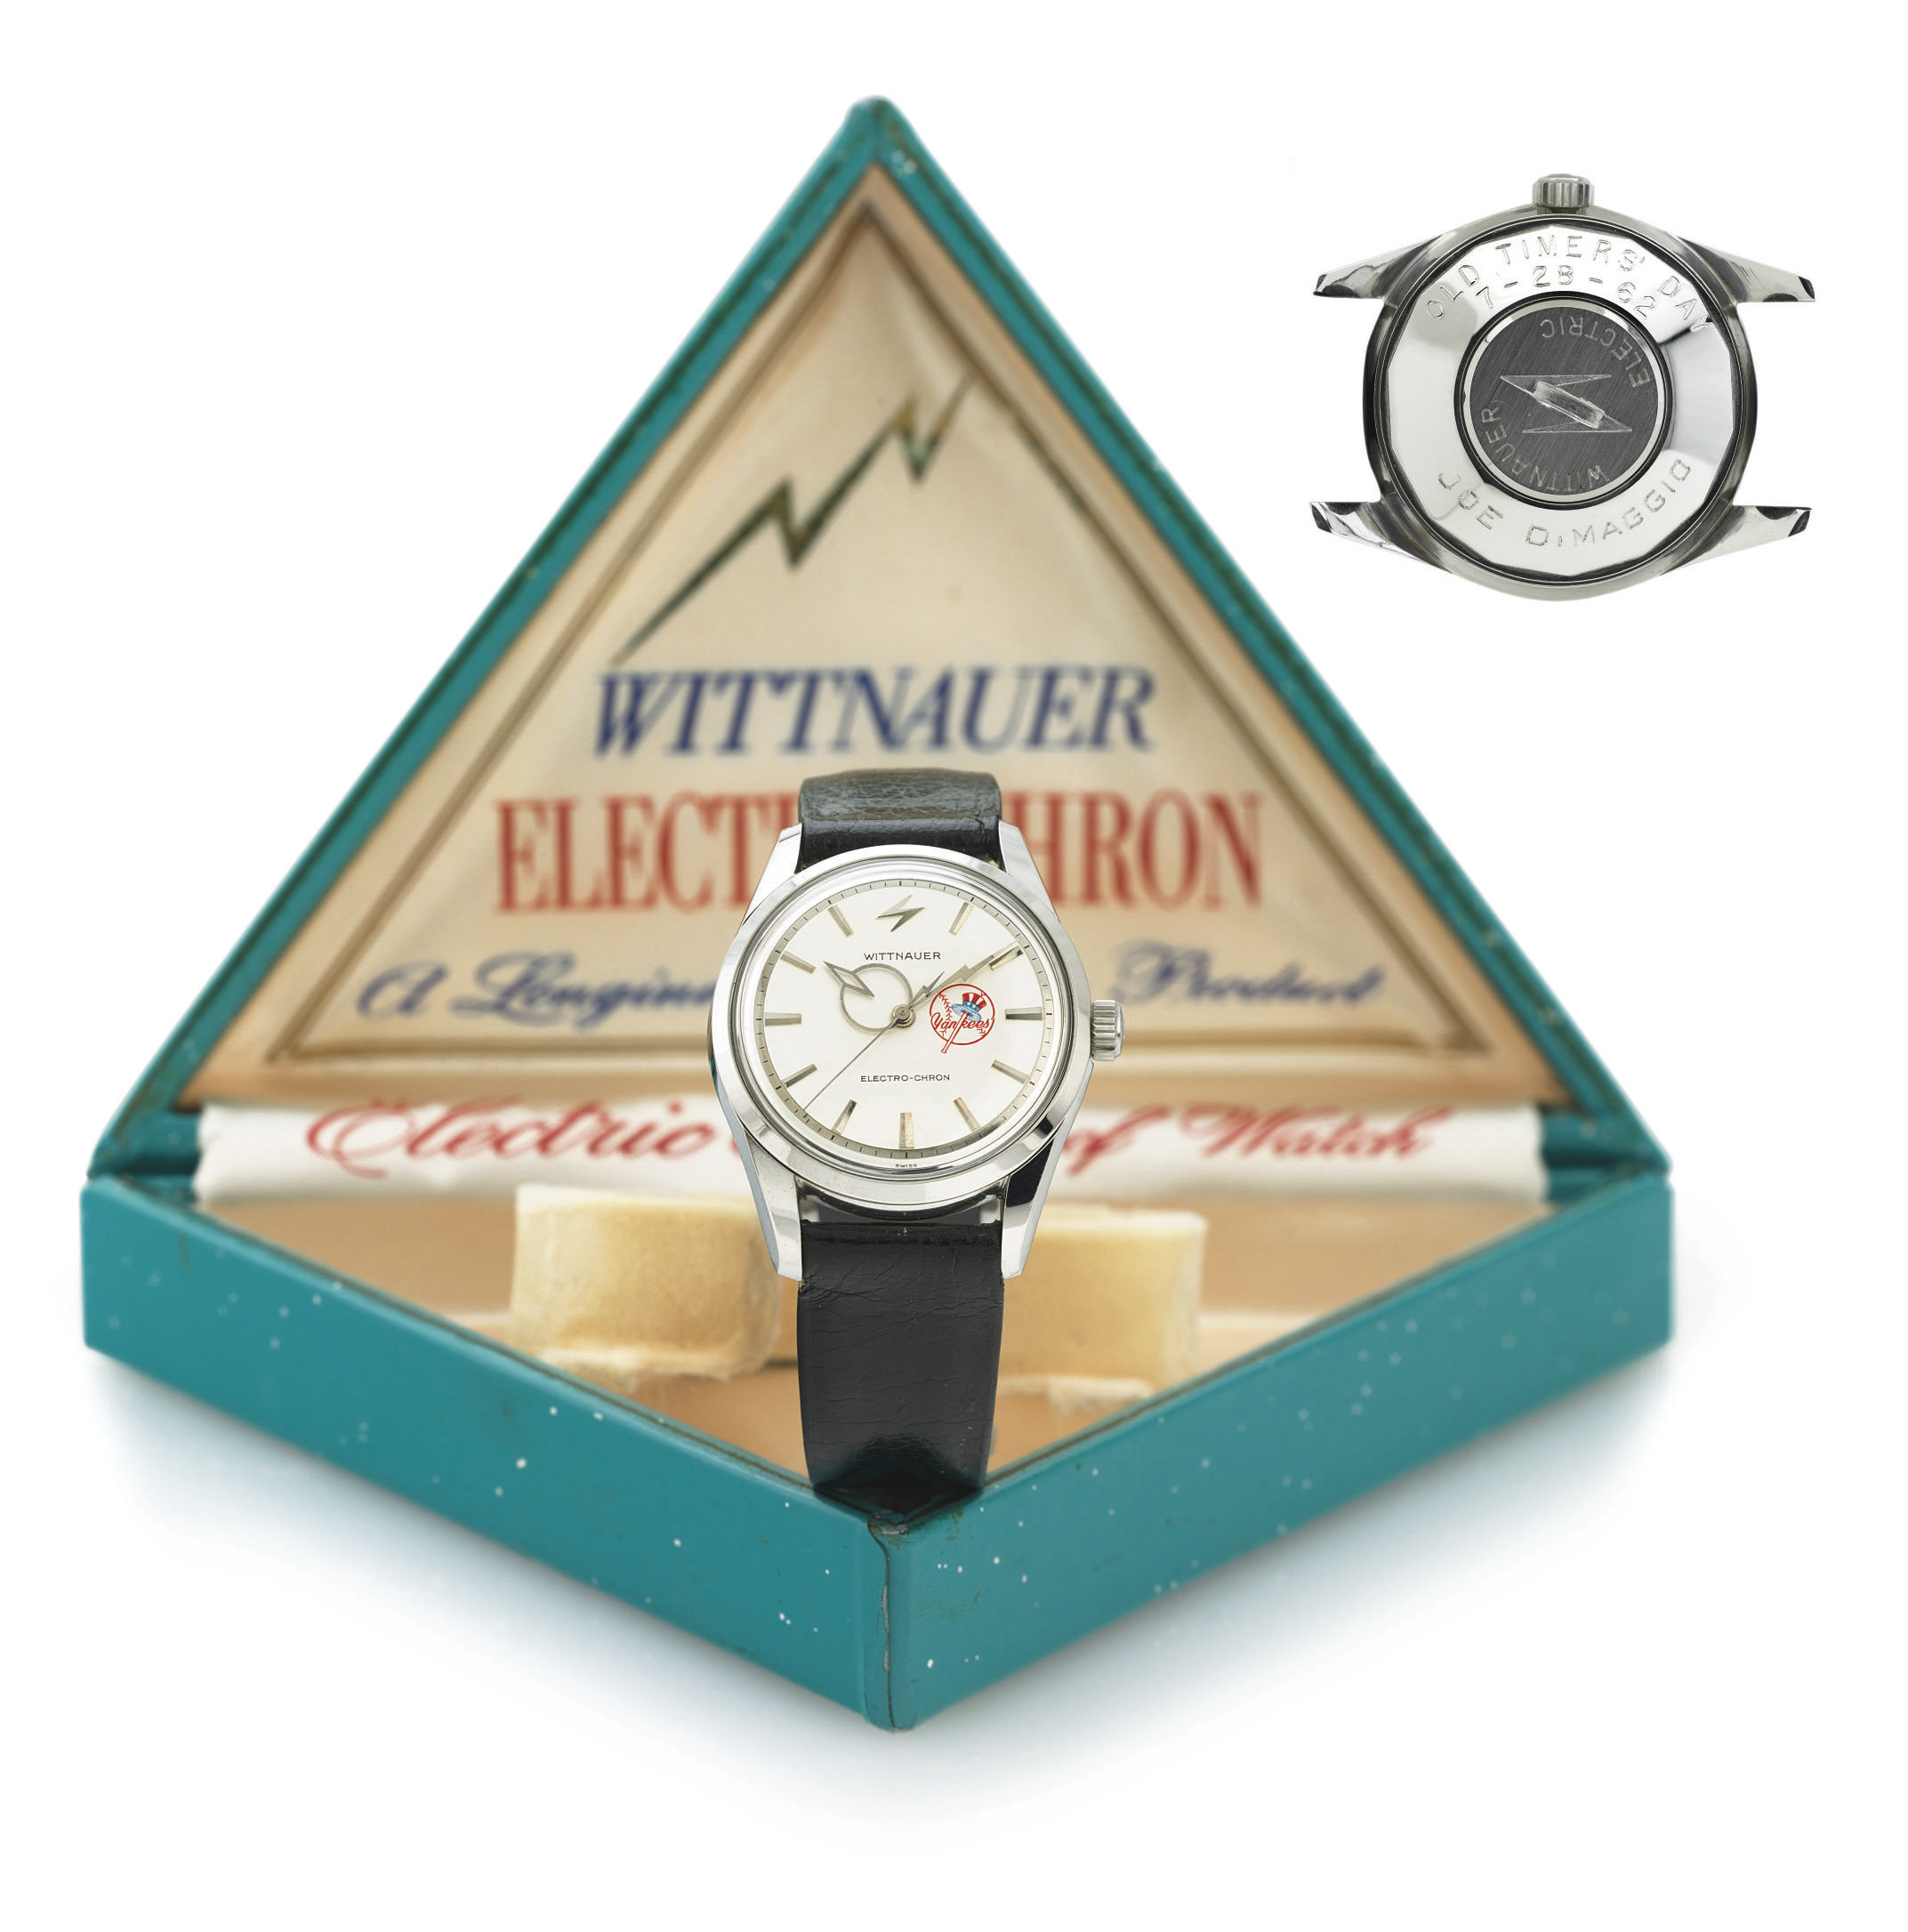 WITTNAUER.  A FINE AND HISTORICALLY IMPORTANT STAINLESS STEEL WRISTWATCH WITH CENTER SECONDS